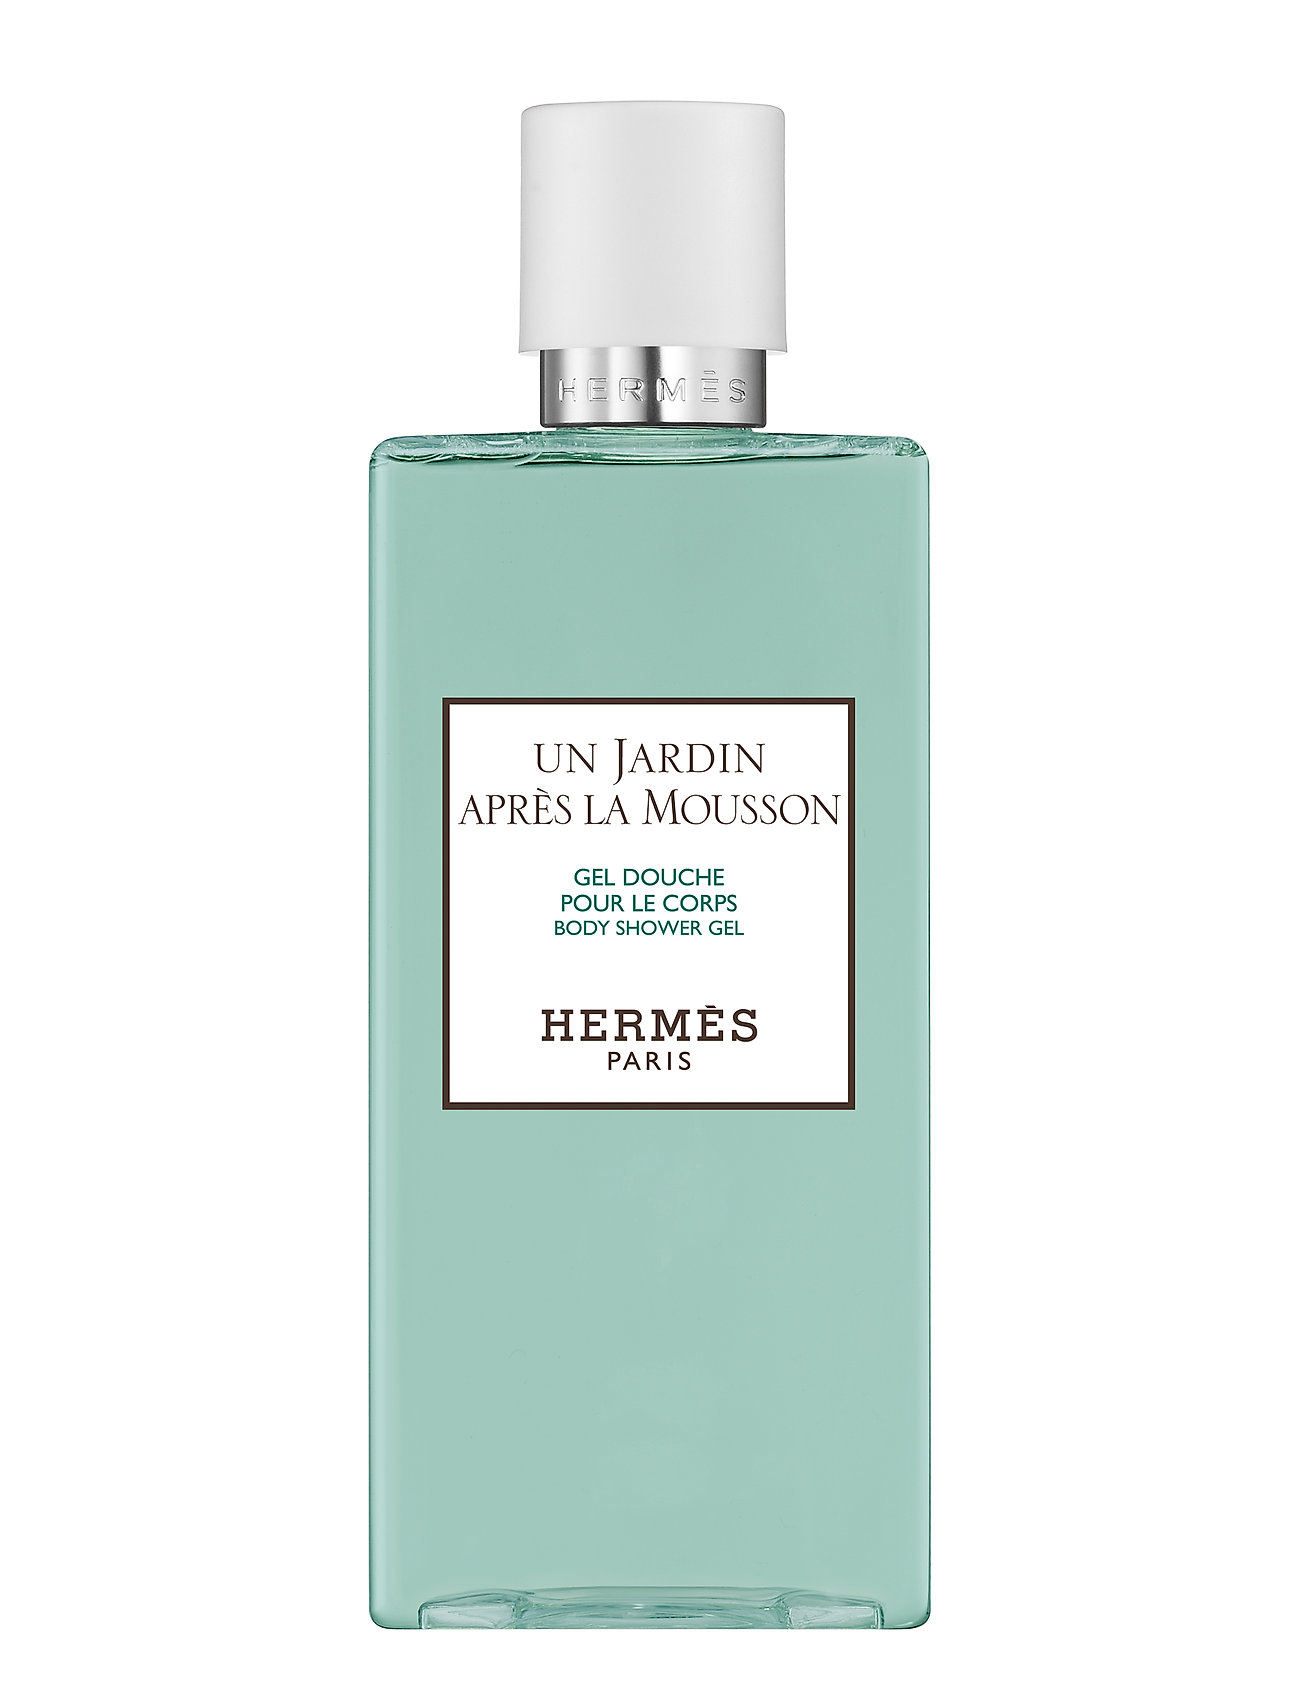 Image of Un Jardin AprèS La Mousson, Body Shower Gel Beauty MEN Skin Care Body Shower Gel Nude HERMÈS (3186825613)